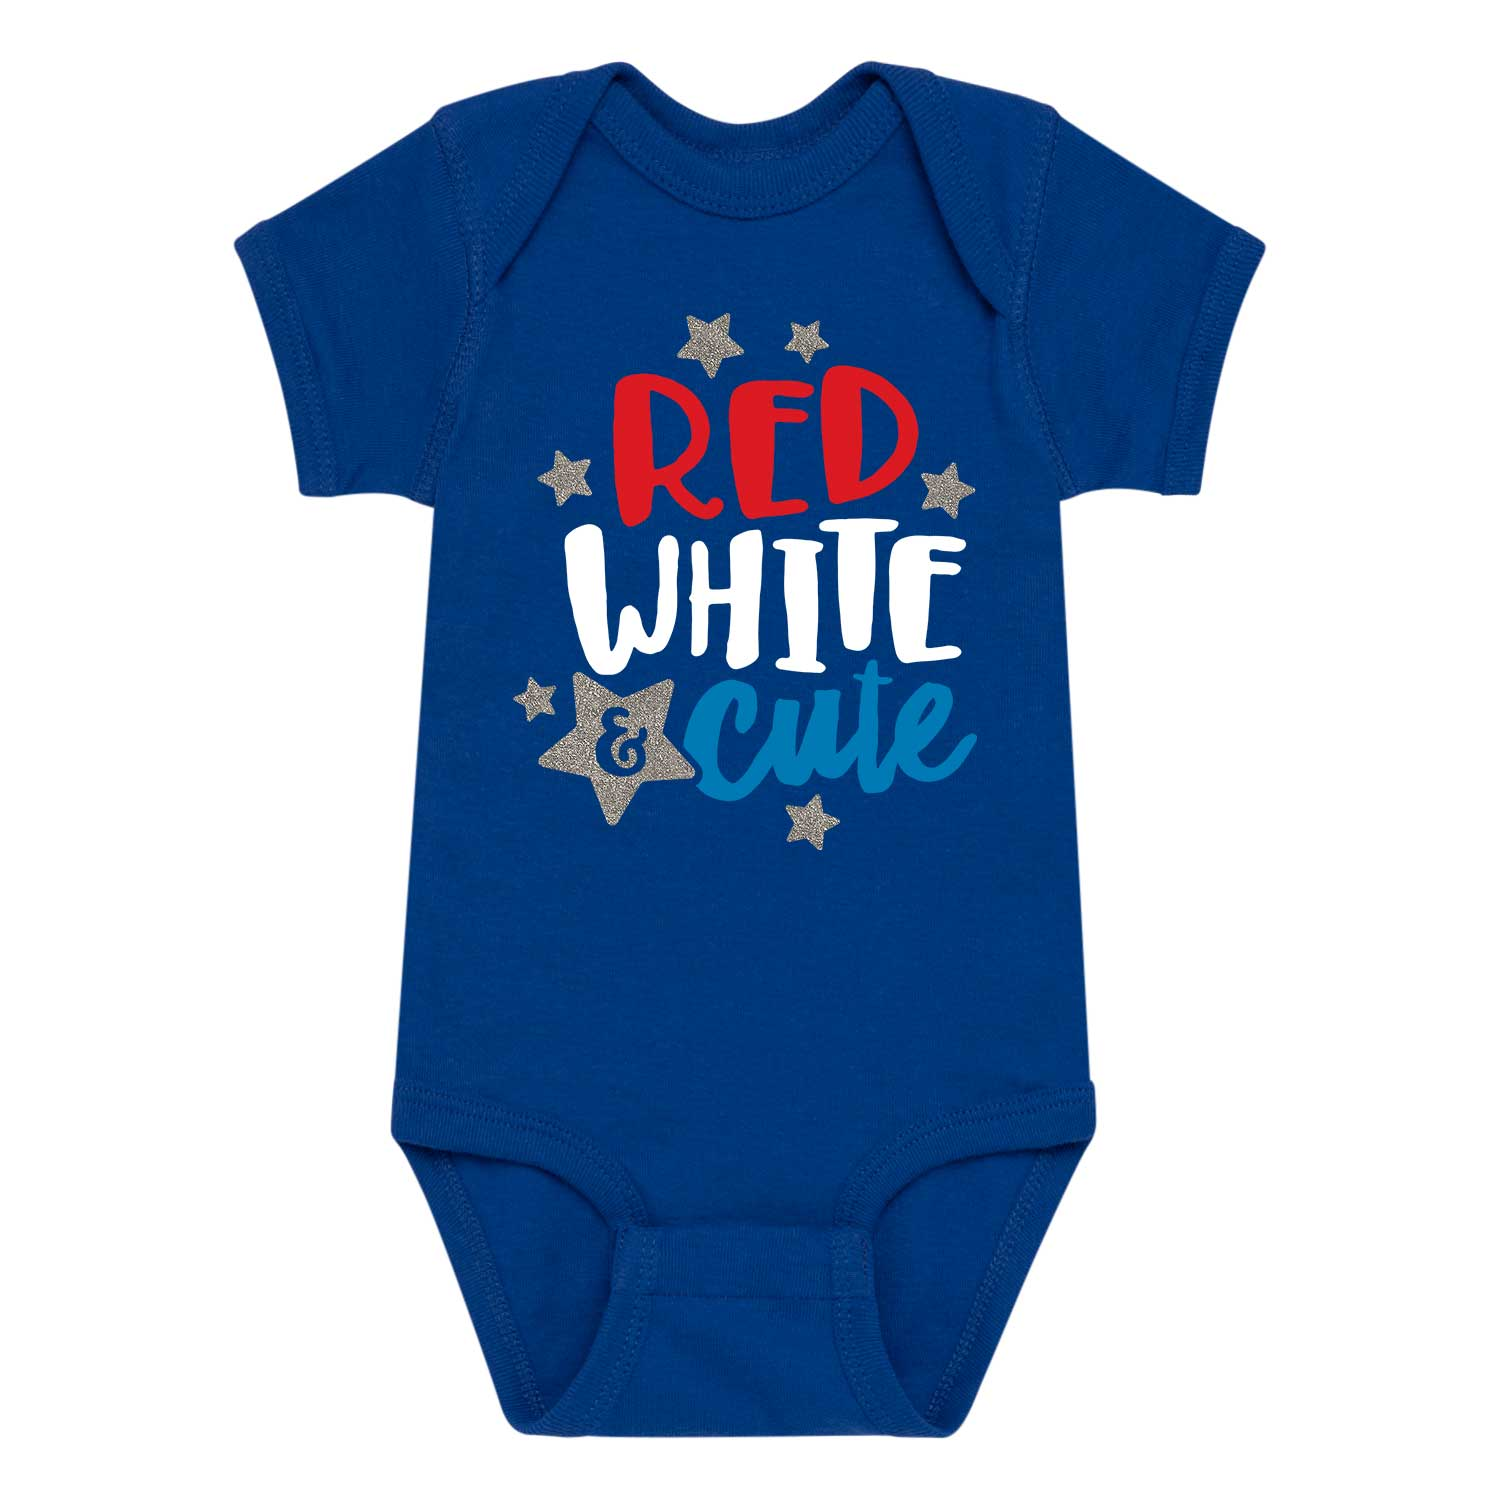 Red White Cute - Infant One Piece